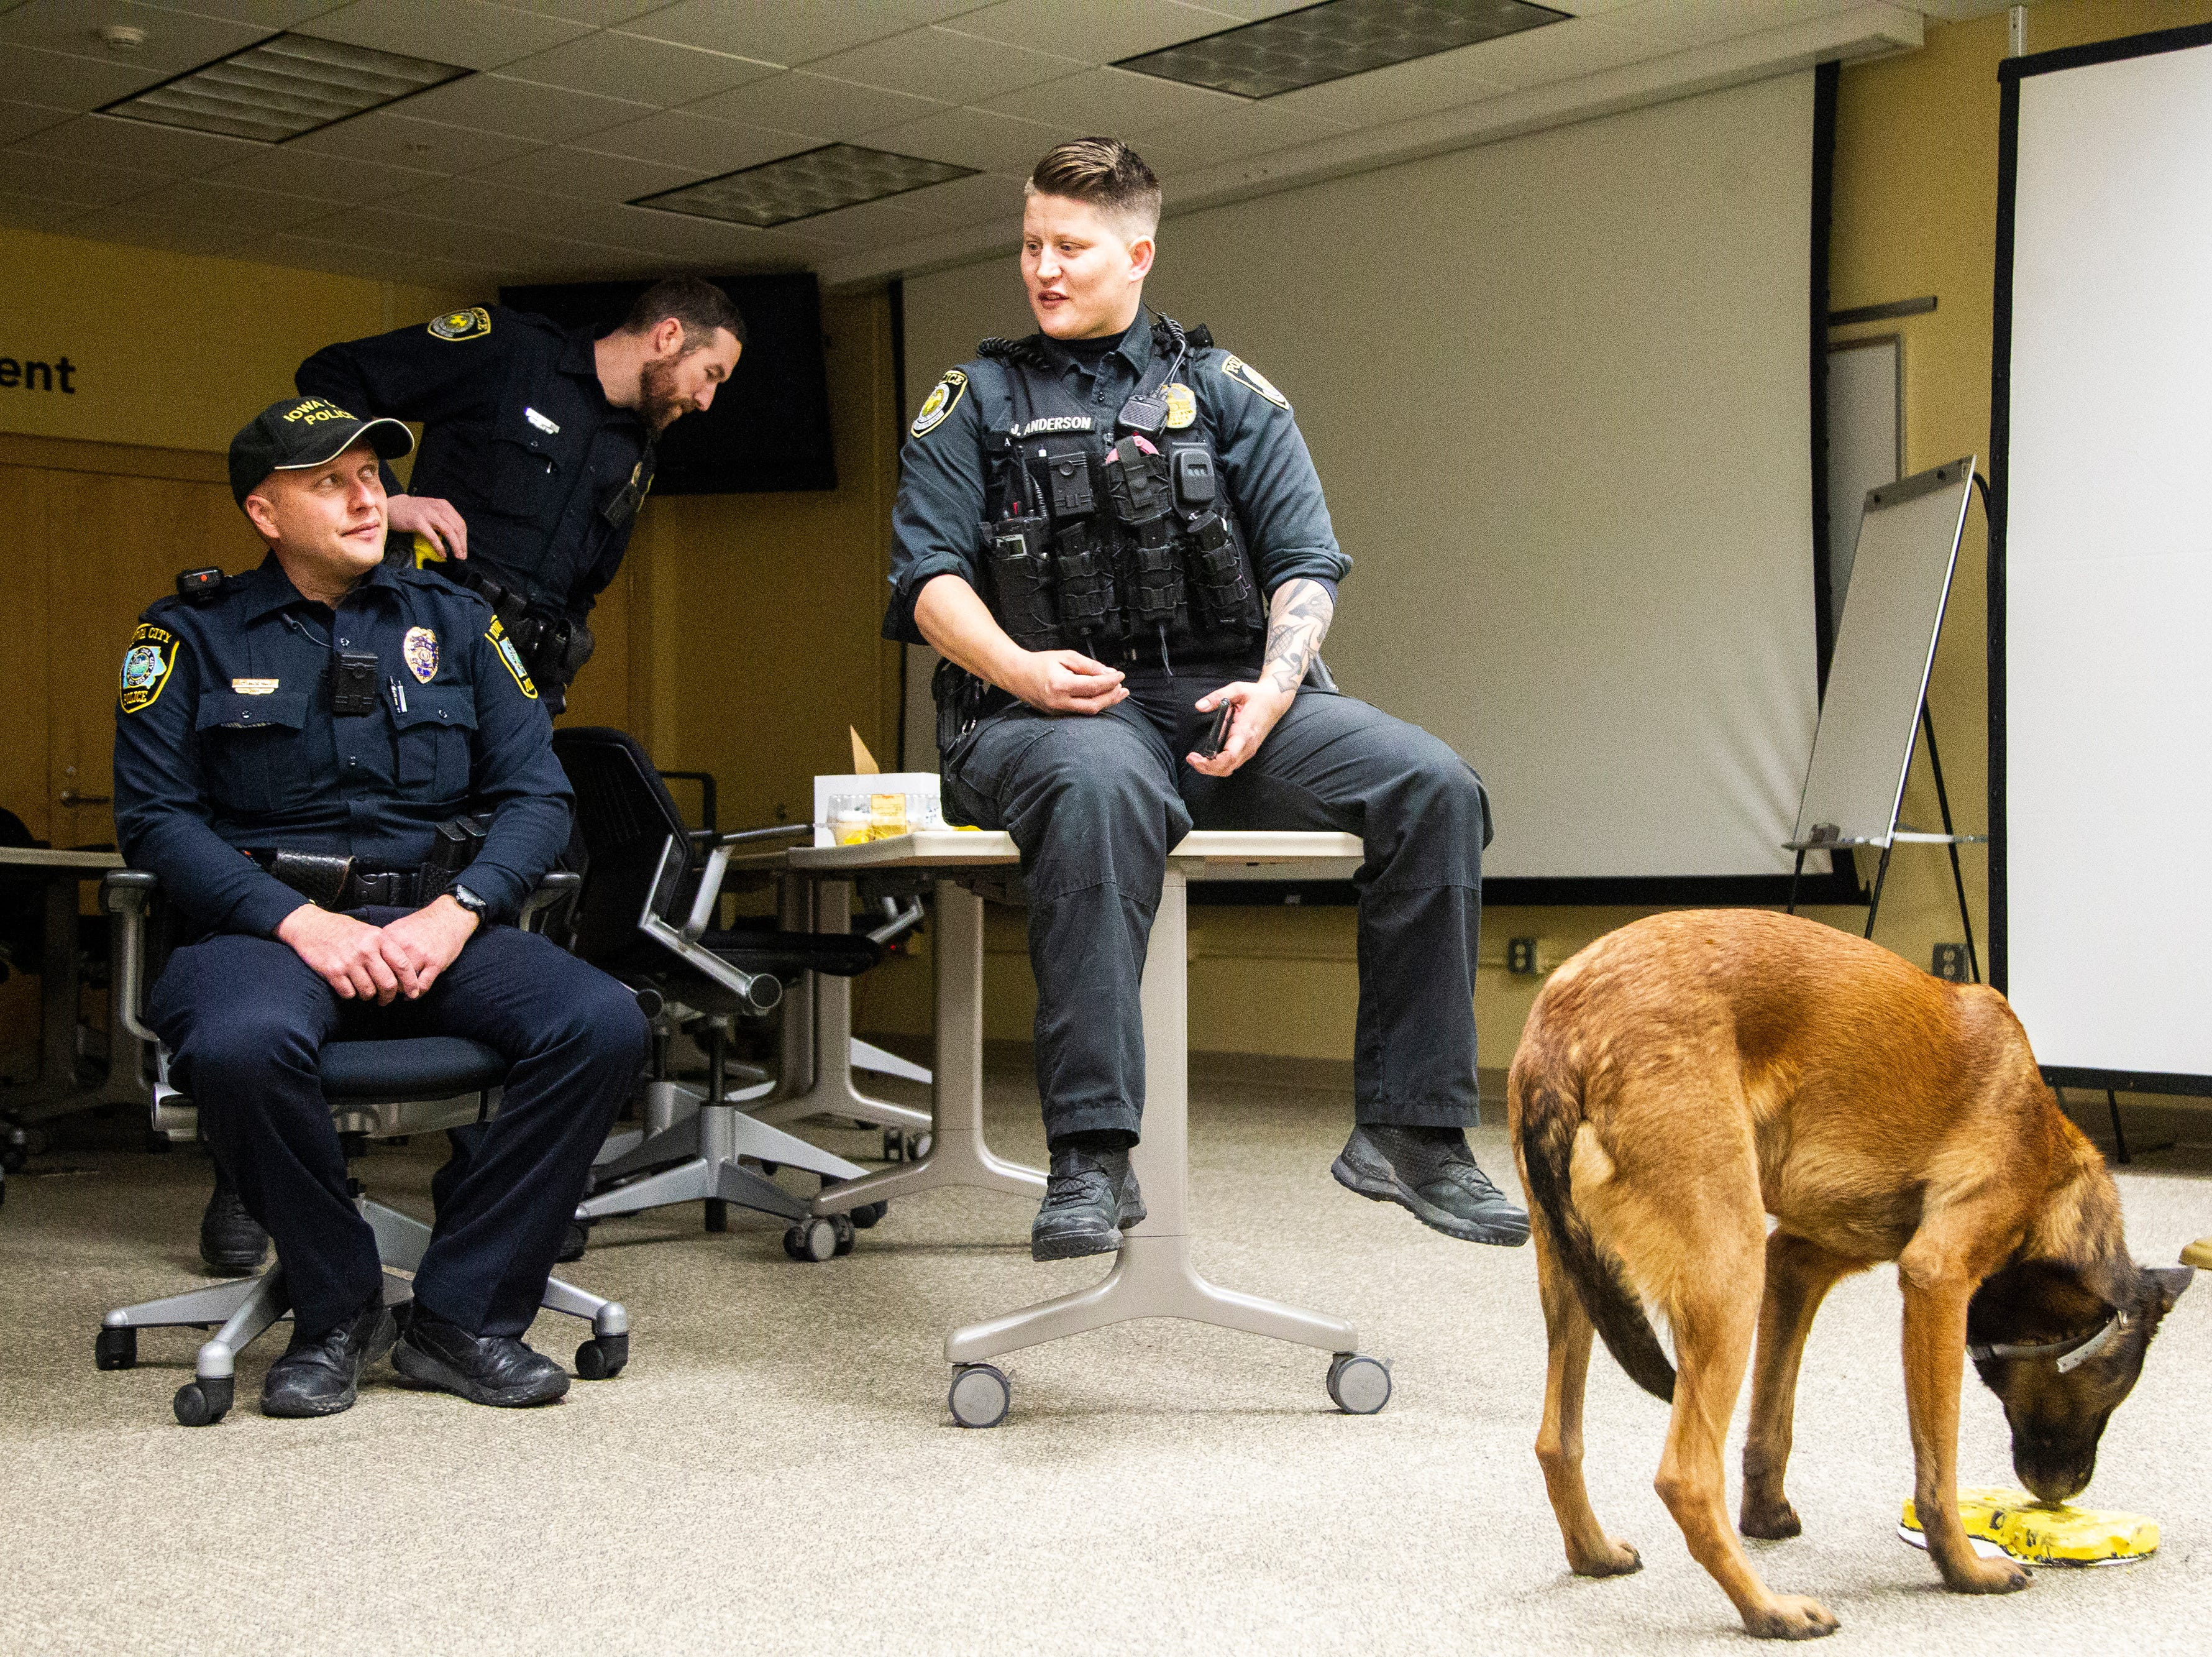 Officer Jackie Anderson, center, talks with Doug Roling, a bomb technician for the Iowa City Police Department, while K9 Falo licks his retirement cake on Saturday, Dec. 1, 2018, at the University of Iowa Police Department at the Old Capitol Town Center in Iowa City.